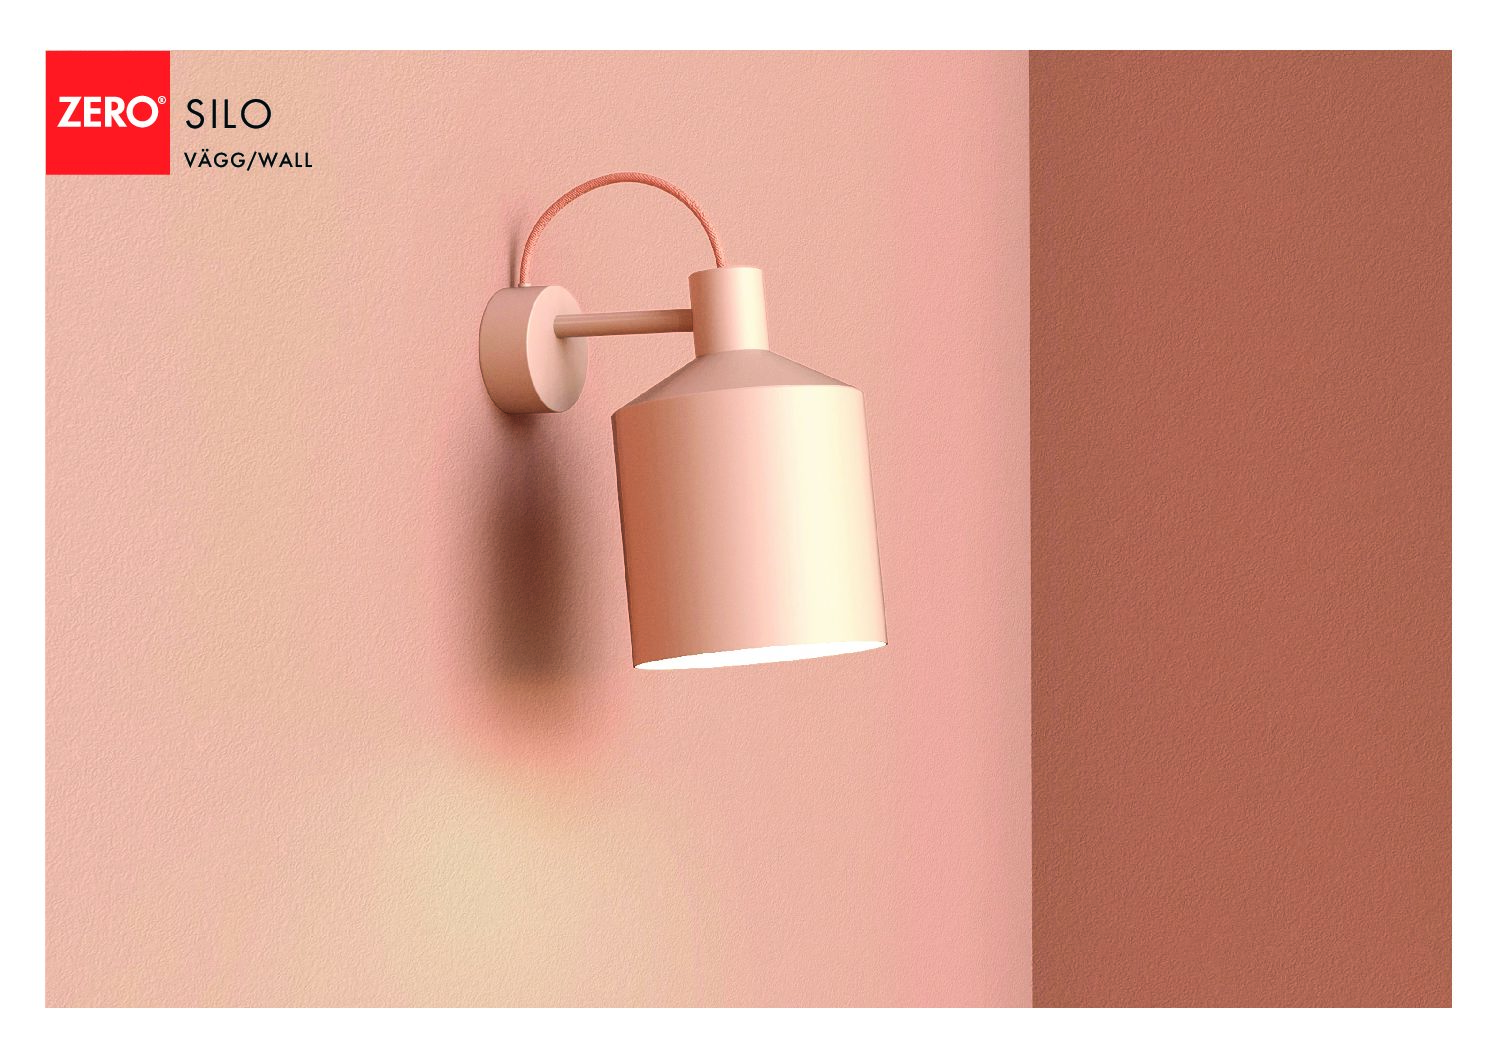 Zero releases Silo wall light - 0